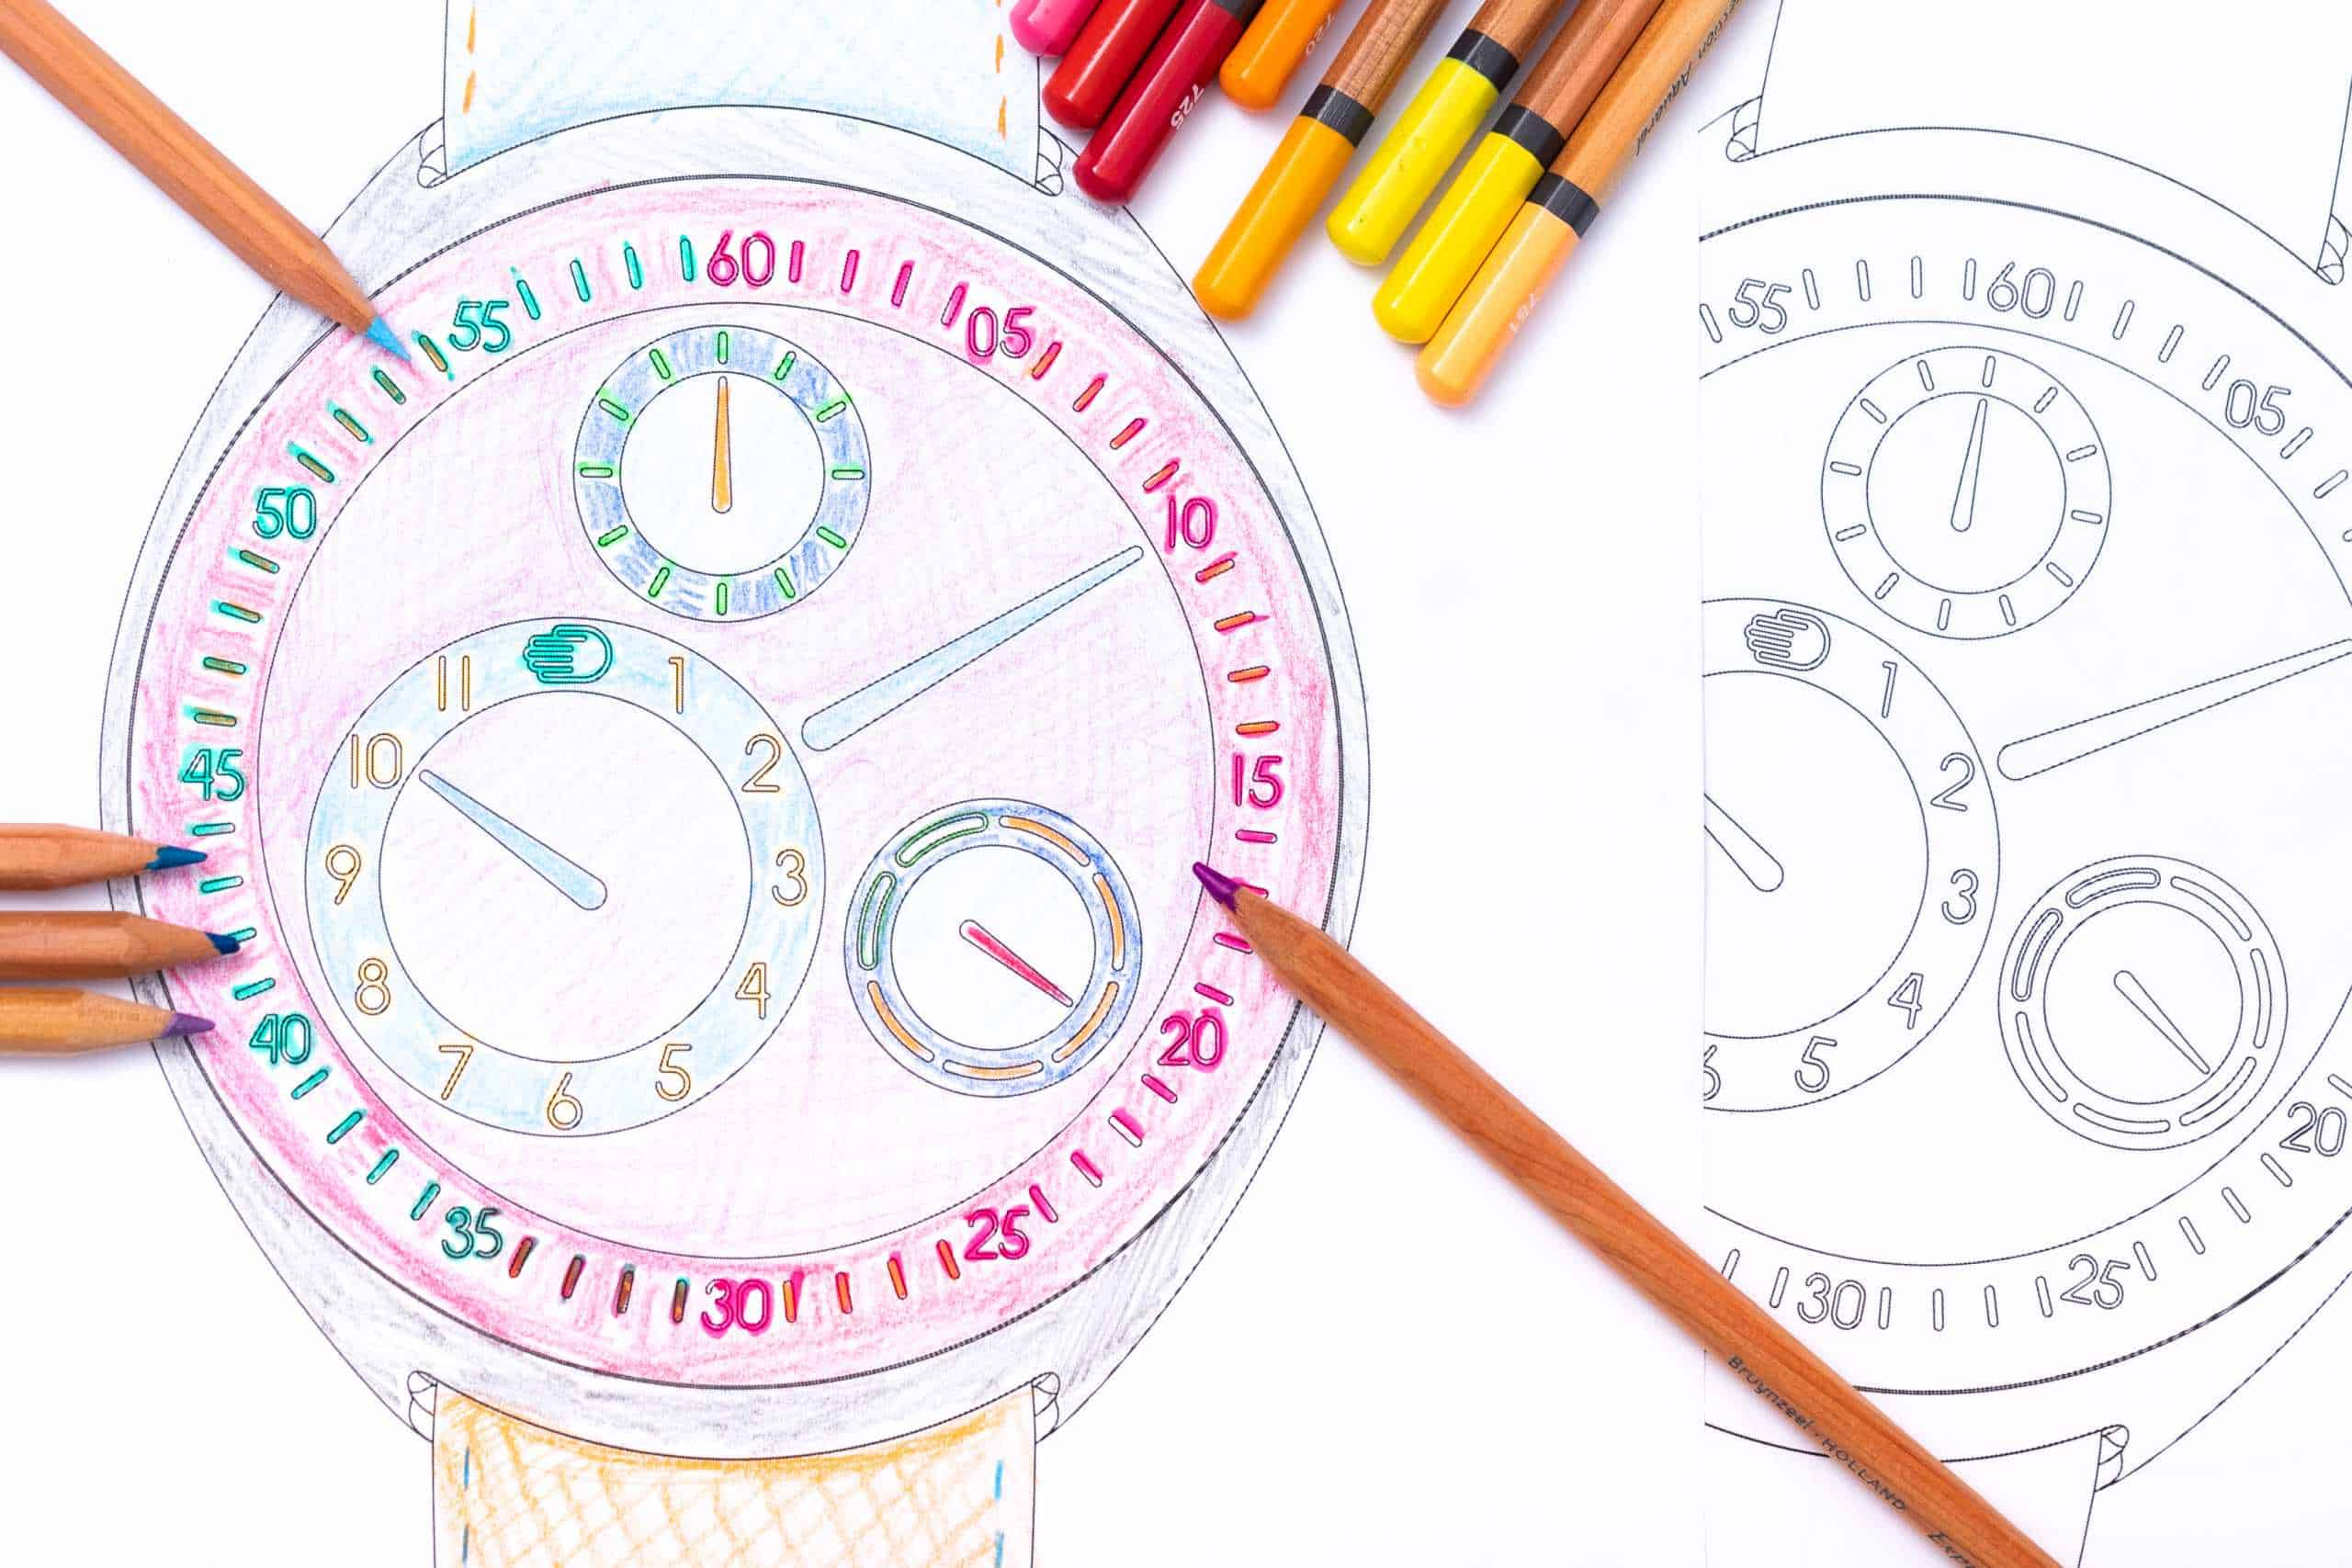 Ressence and Sotheby's Watches Join Forces Against Coronavirus